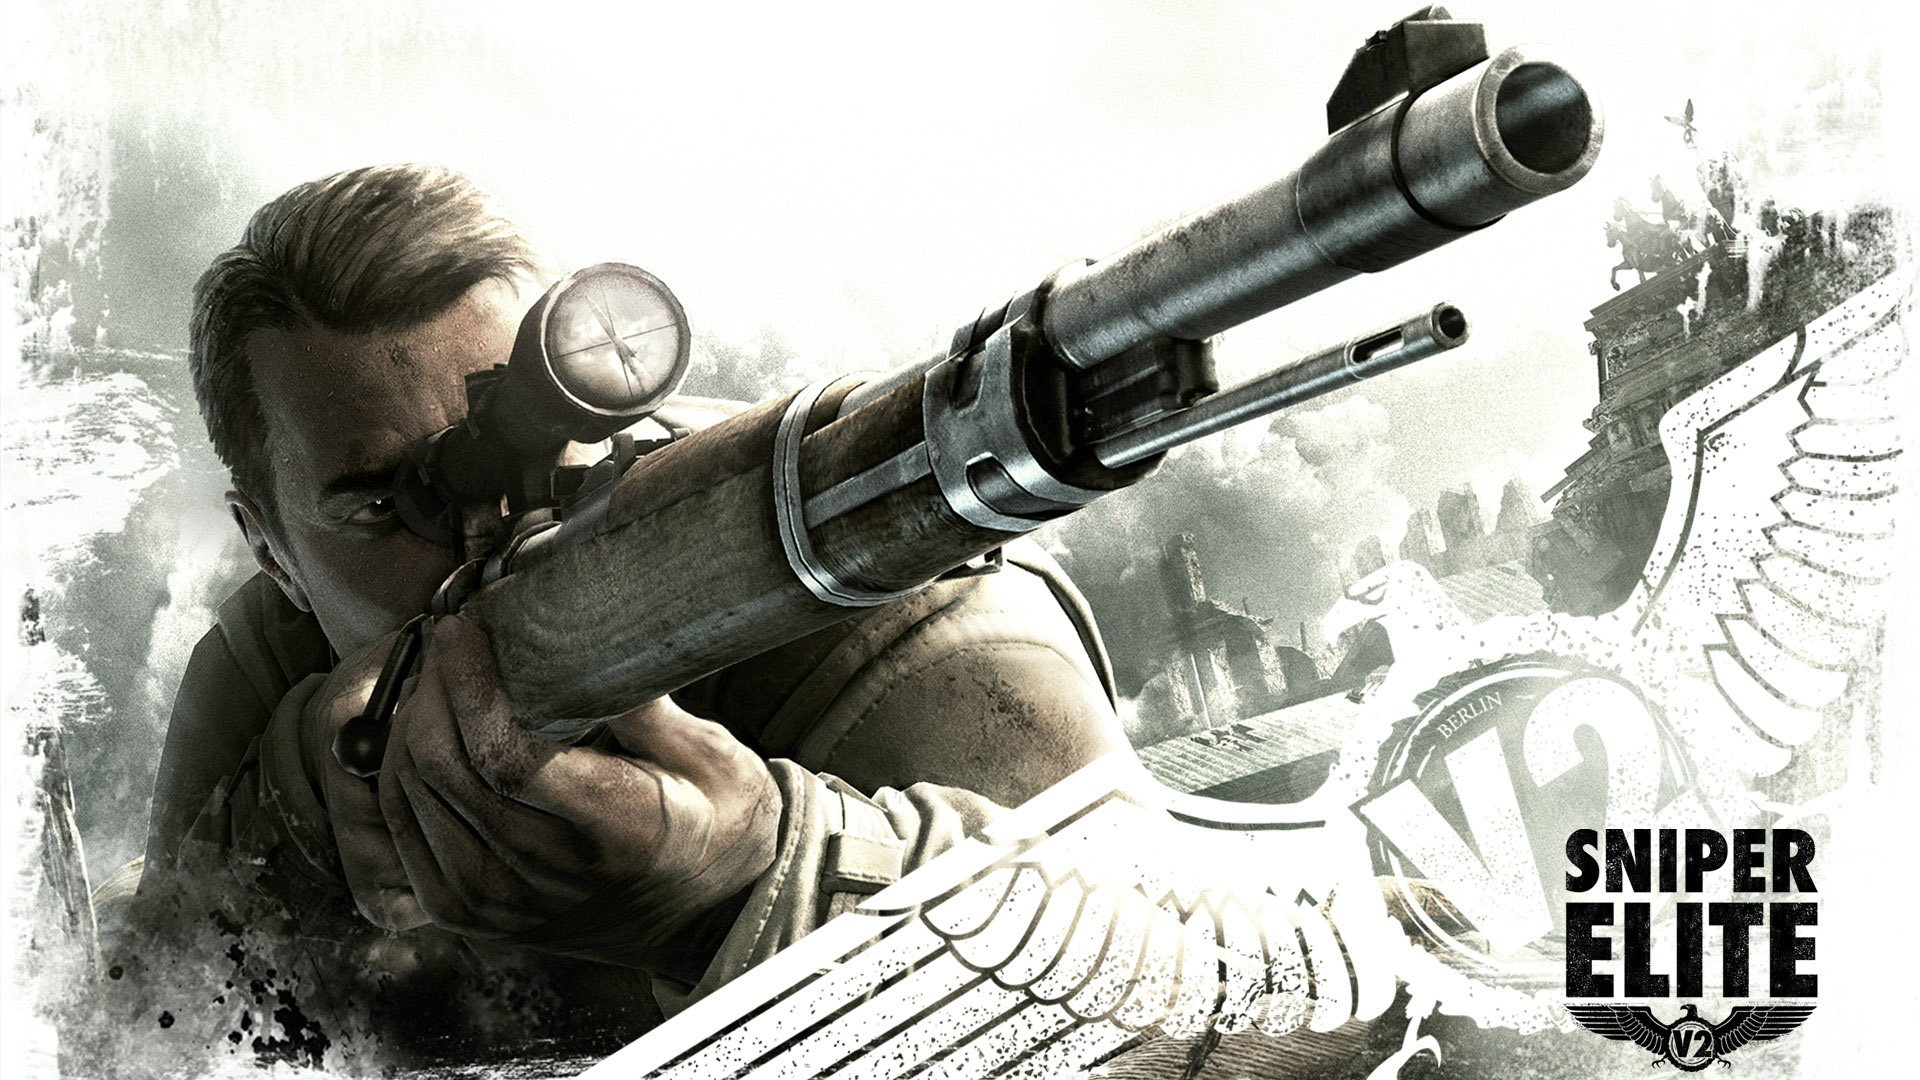 Sniper Elite Background